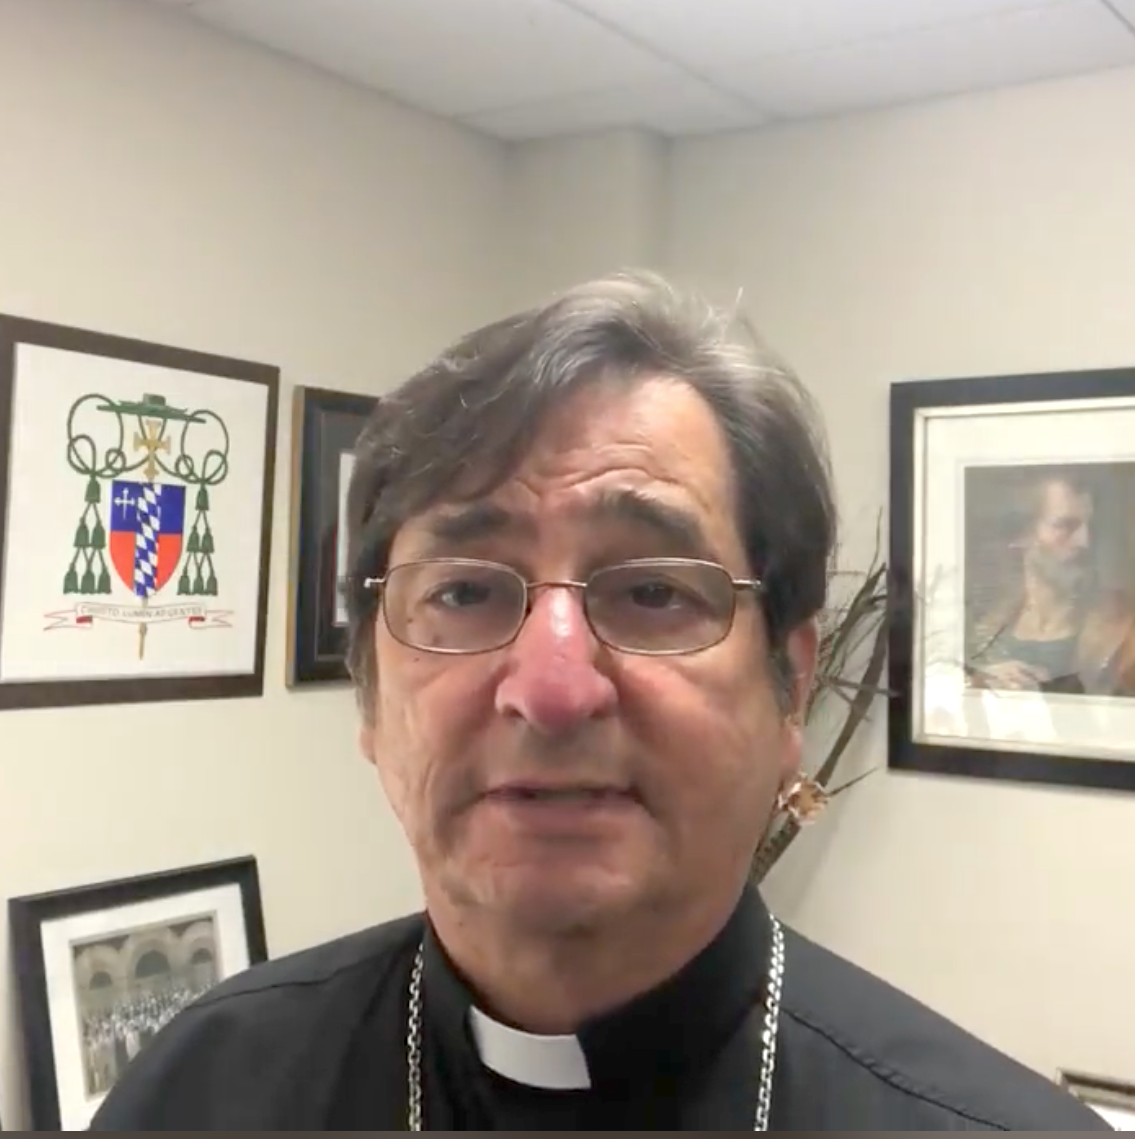 Religious Education Update from Bishop | Repaso del Obispo sobre Educación Religiosa 07-31-20